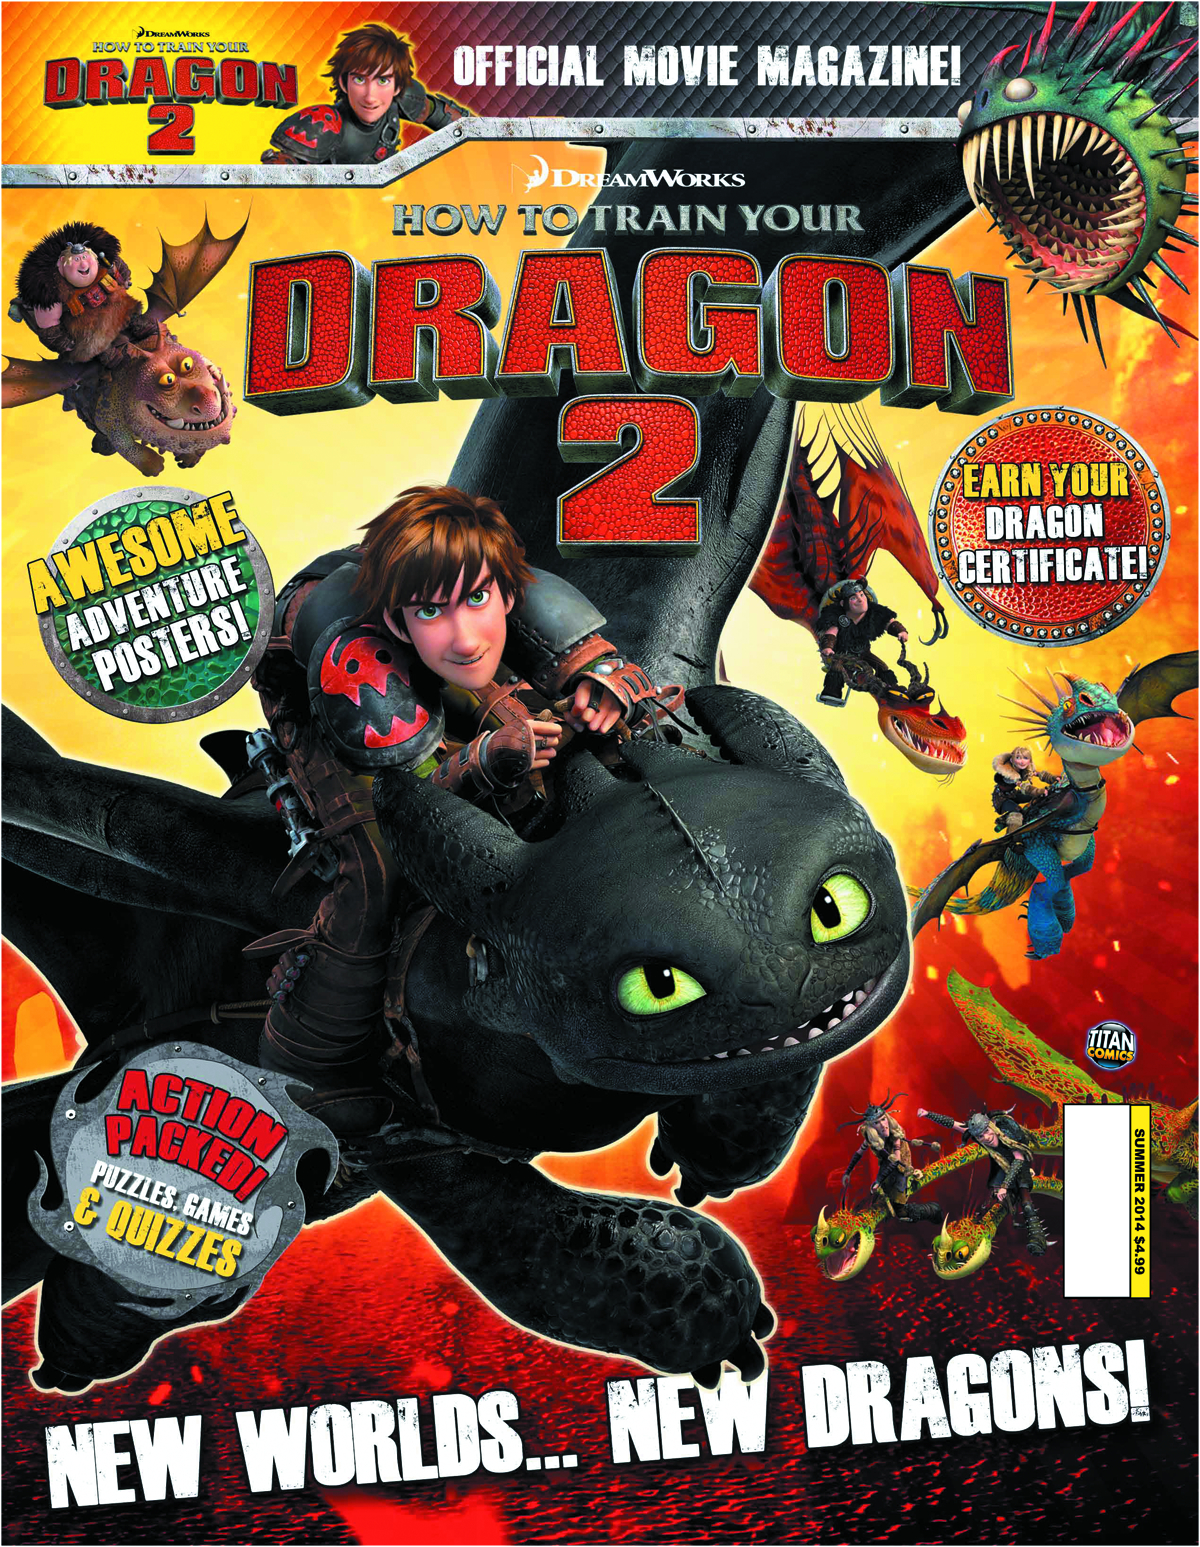 HOW TO TRAIN YOUR DRAGON 2 MOVIE MAGAZINE